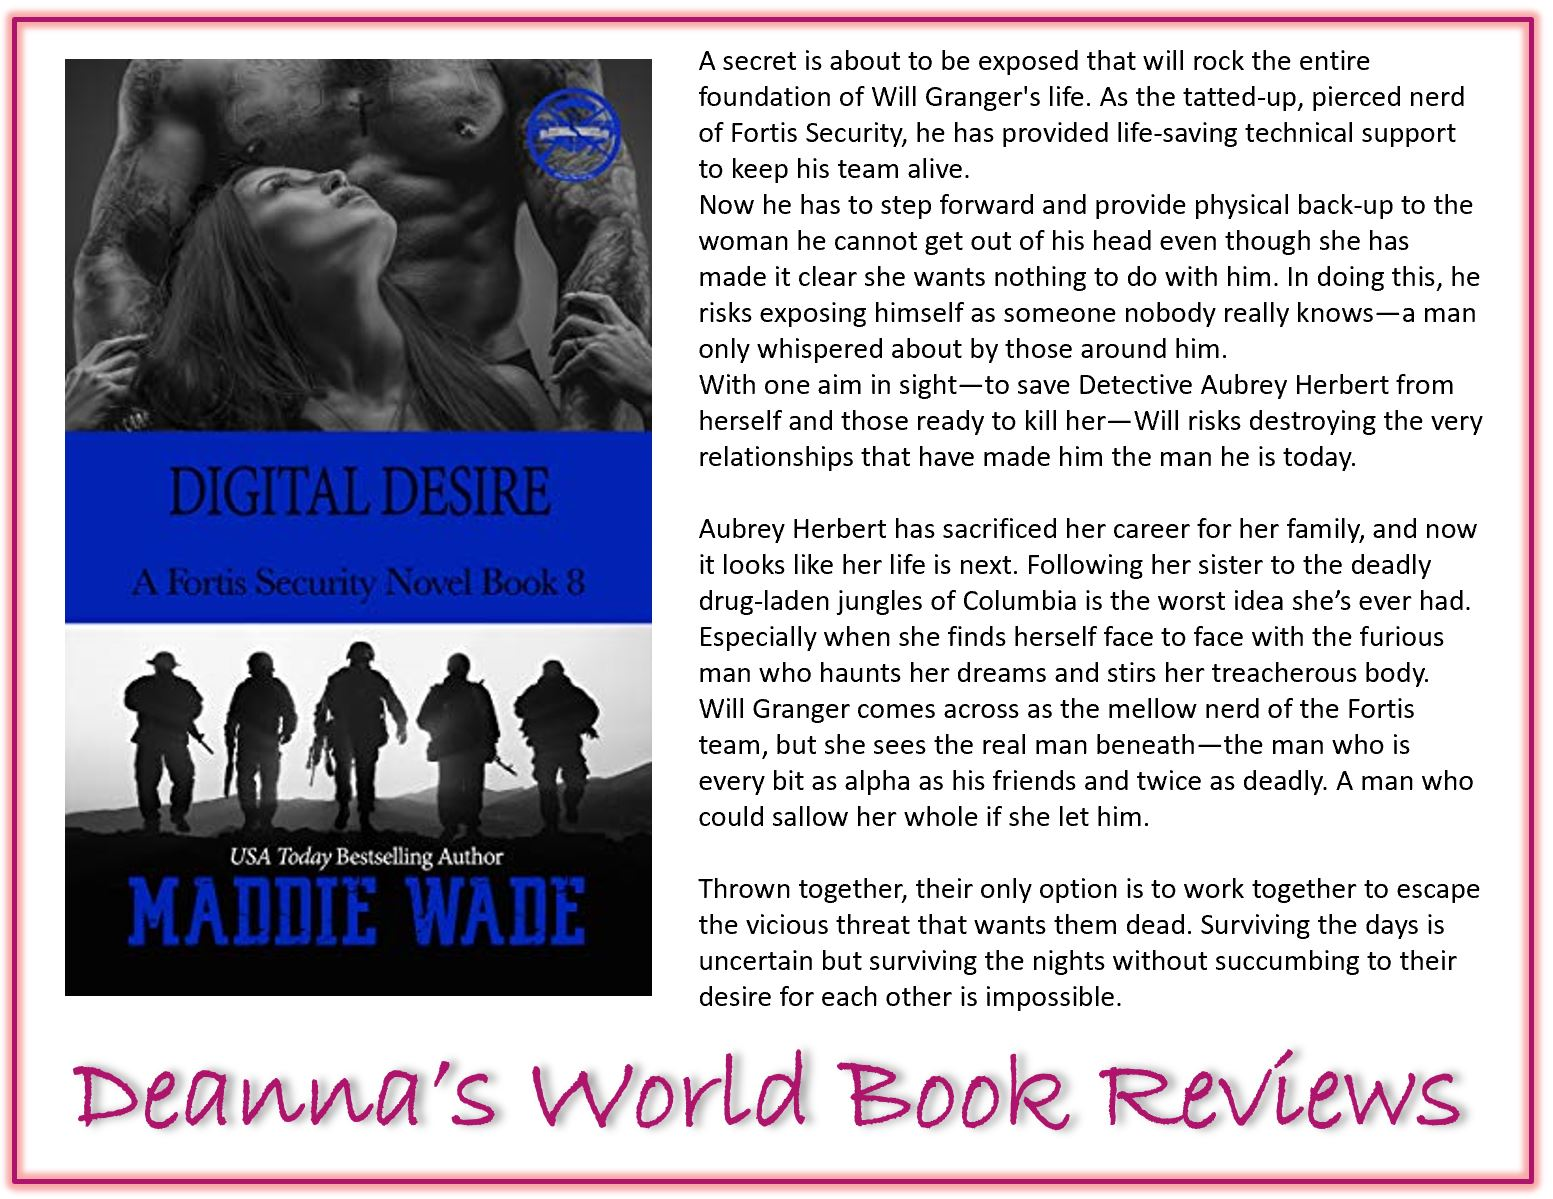 Digital Desire by Maddie Wade blurb